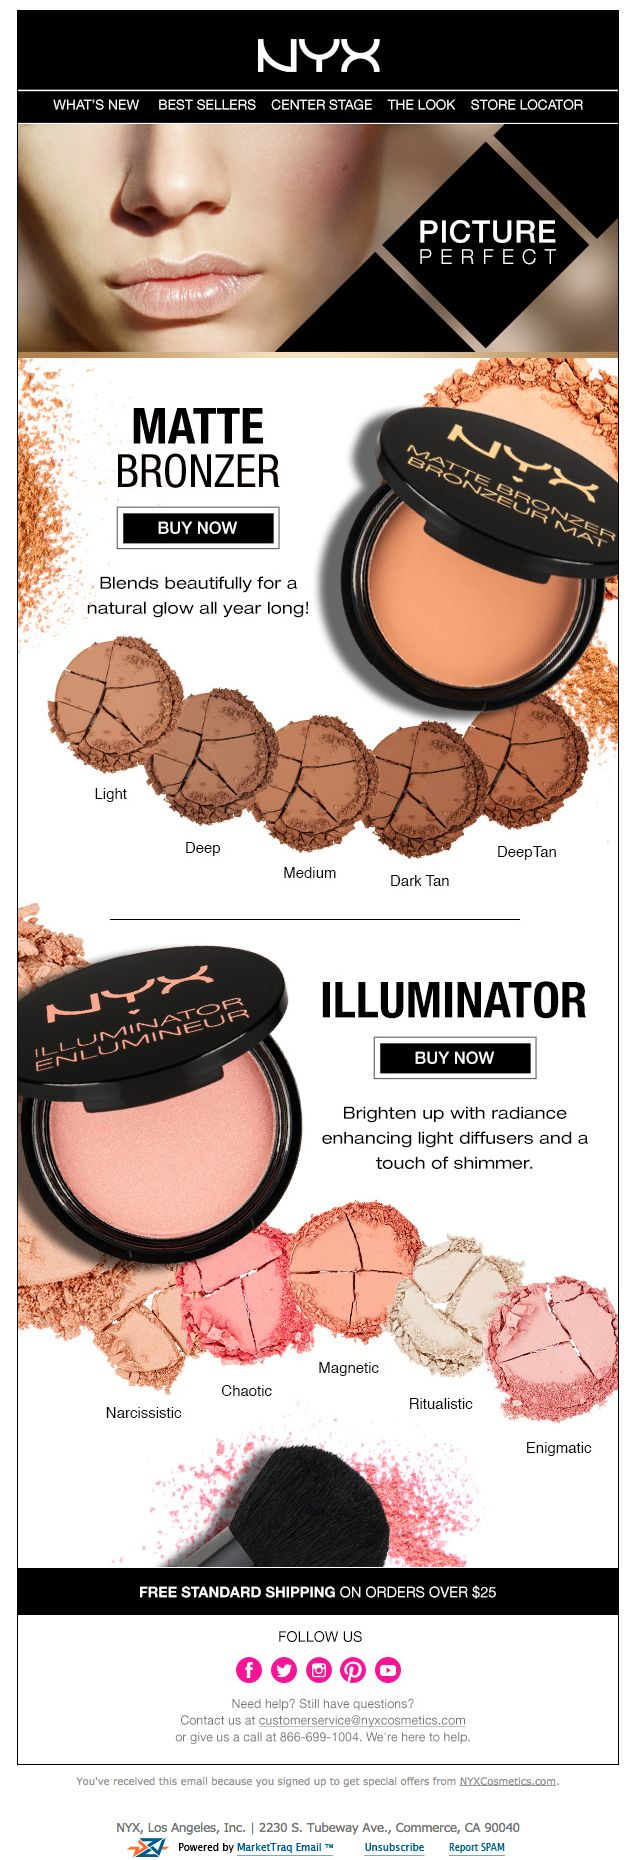 NYX Bronzer/Illuminator Product Email Would be a fun email to play with alt tags and colored cells.